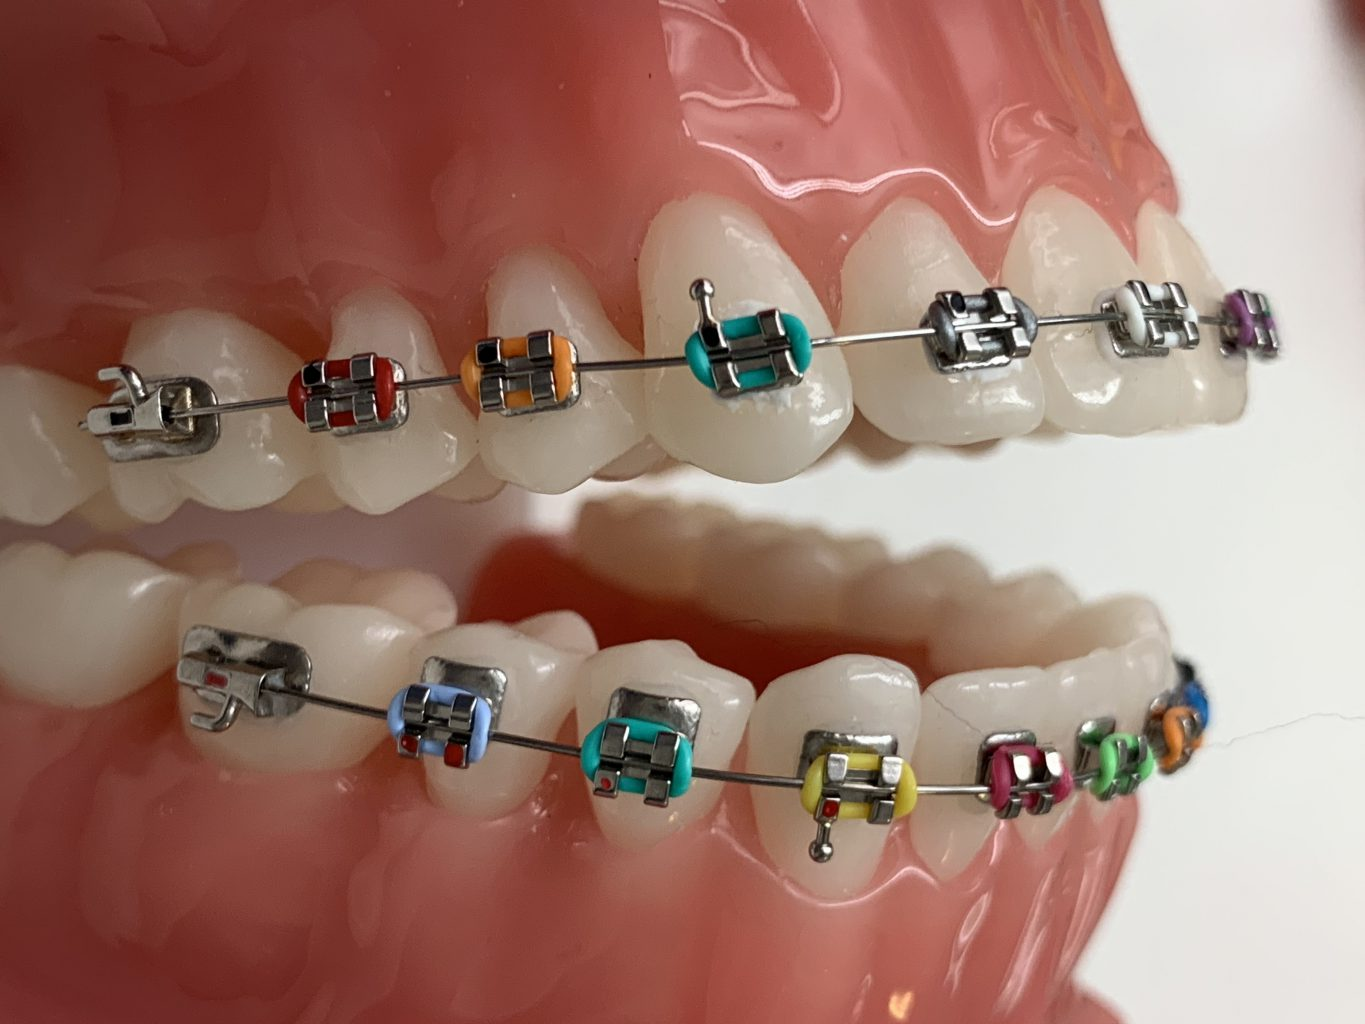 American Orthodontics Mini Master brackets